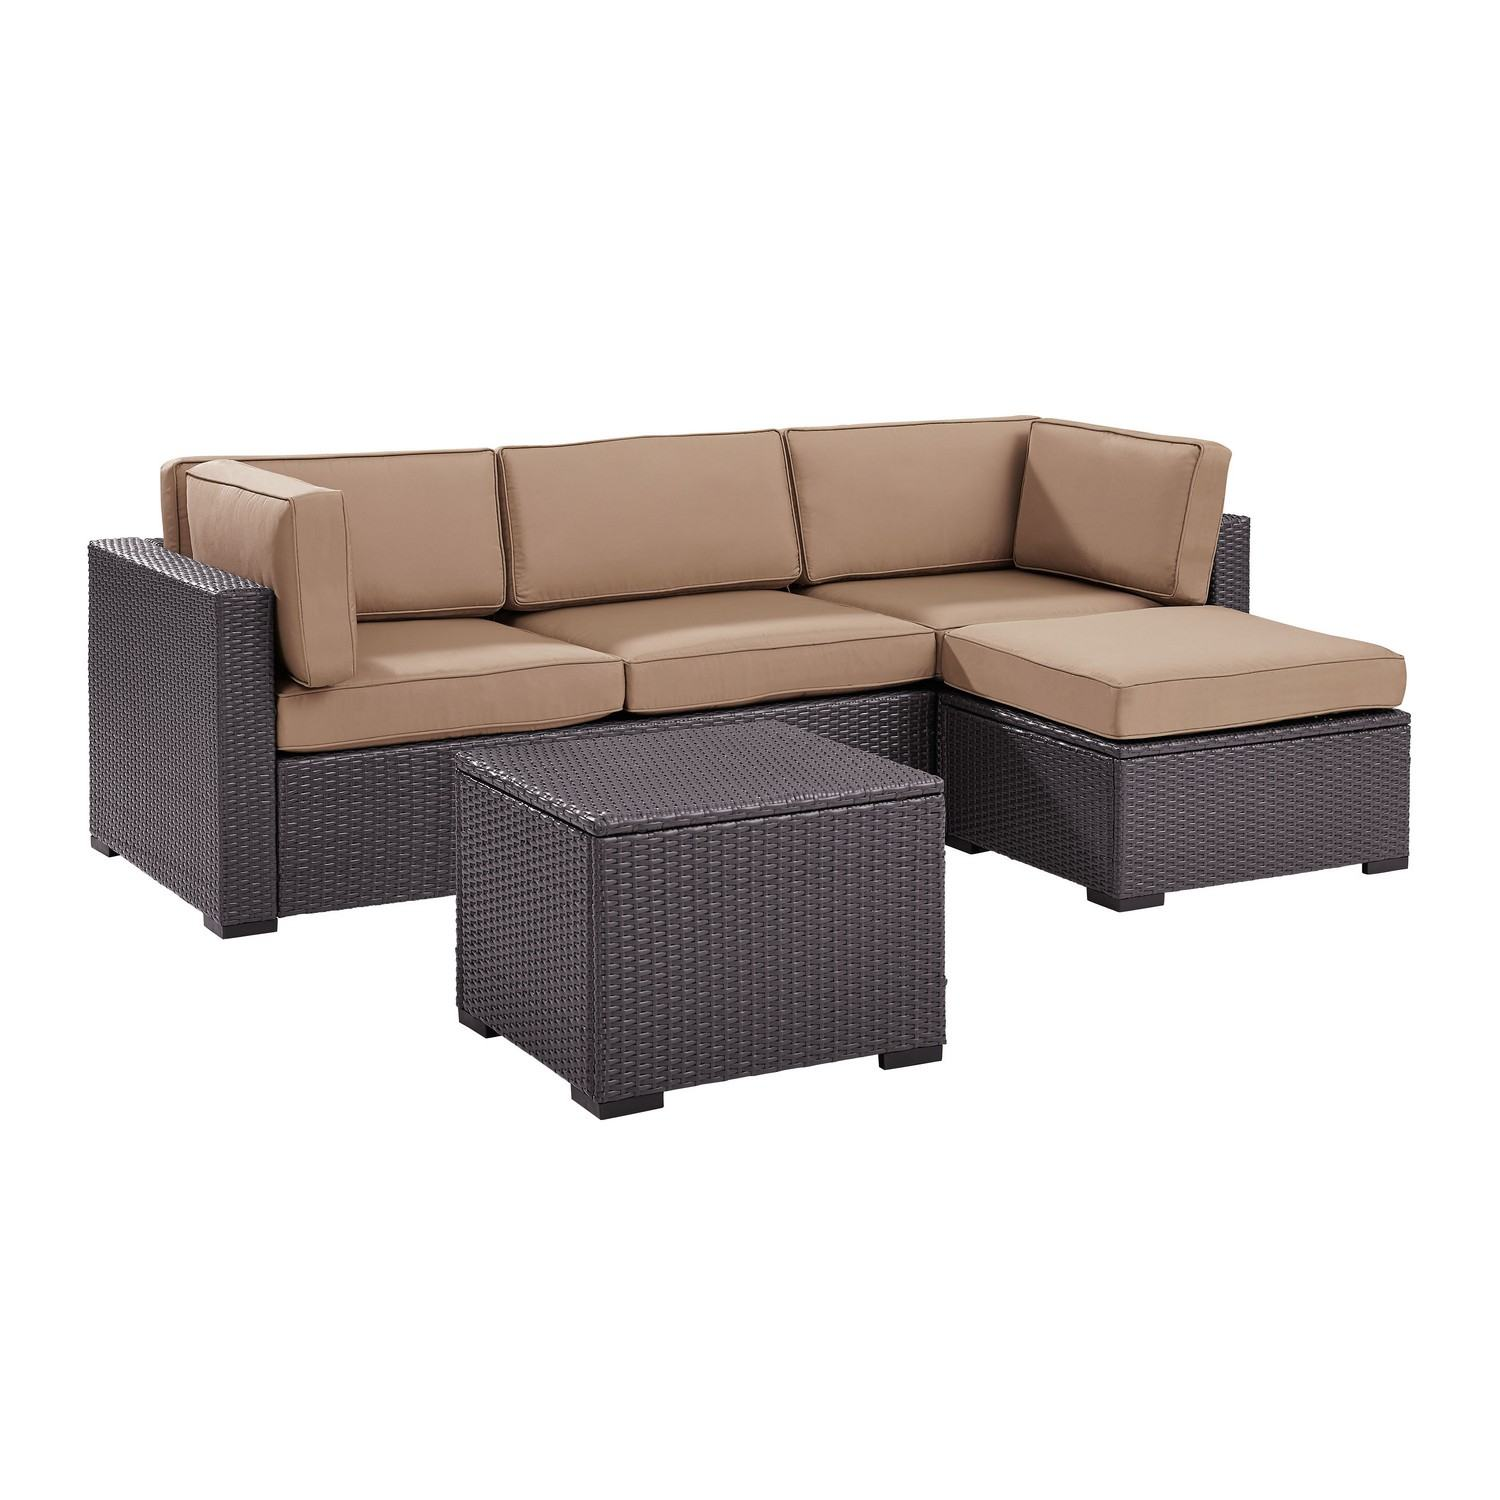 Crosley Biscayne 4-PC Outdoor Wicker Sectional Set - Loveseat, Corner Chair, Ottoman, Coffee Table - Mocha/Brown